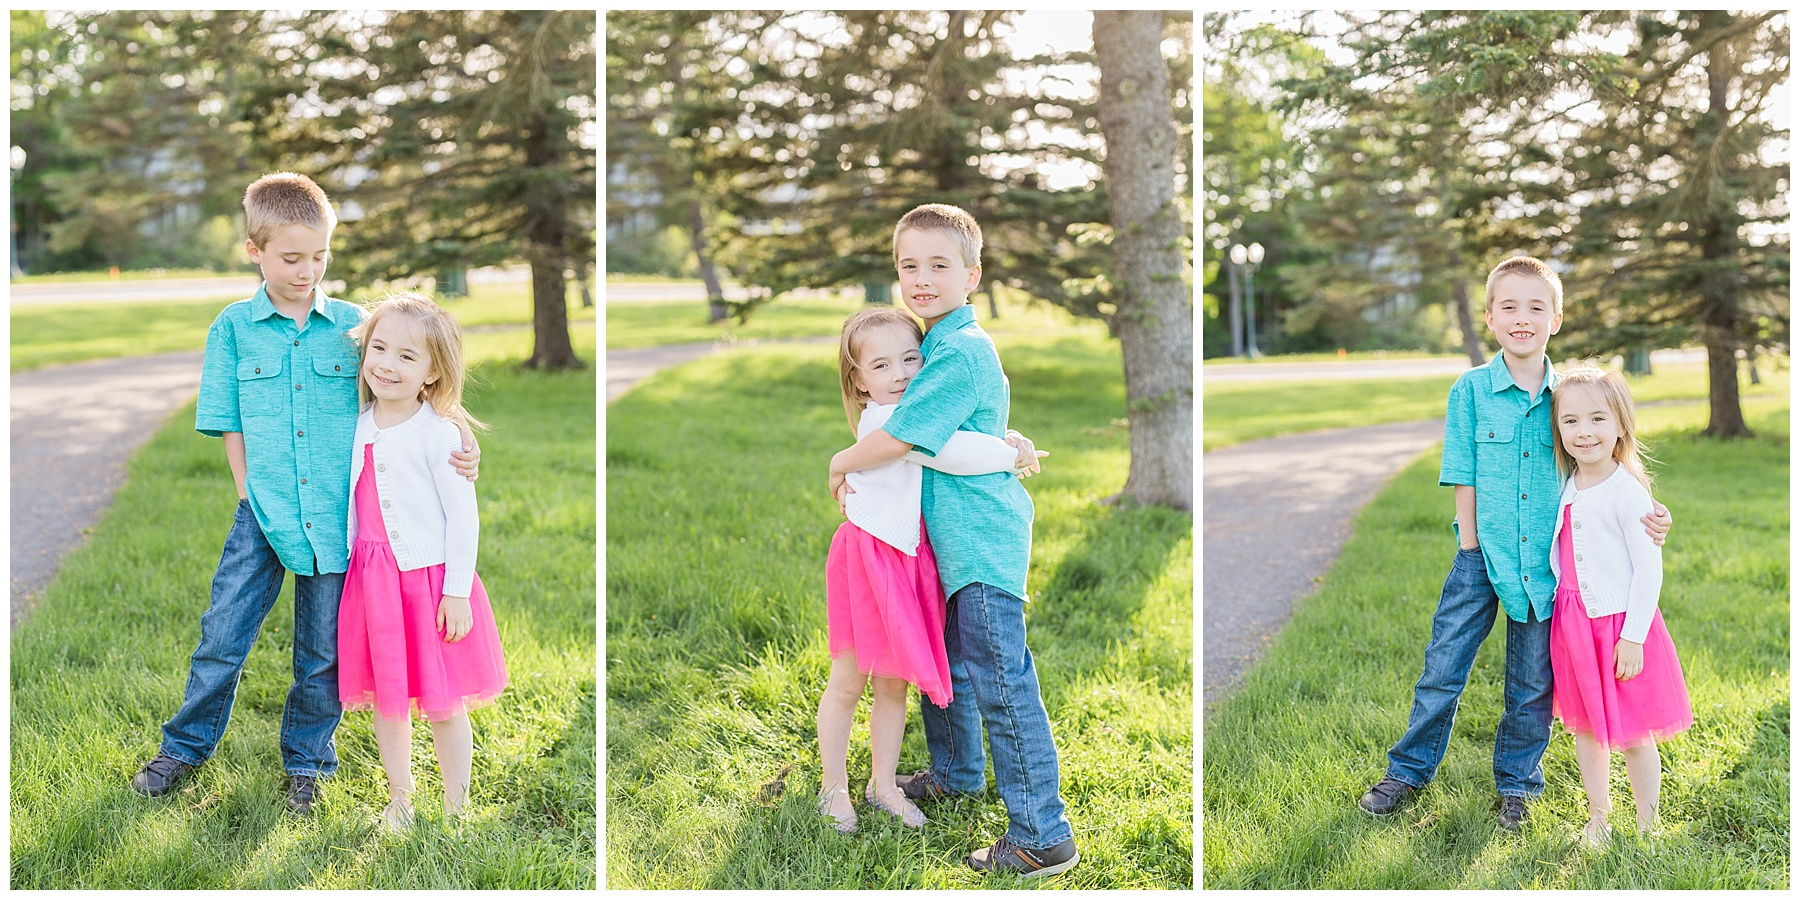 Best Maine Family Photographer in Augusta or Portland